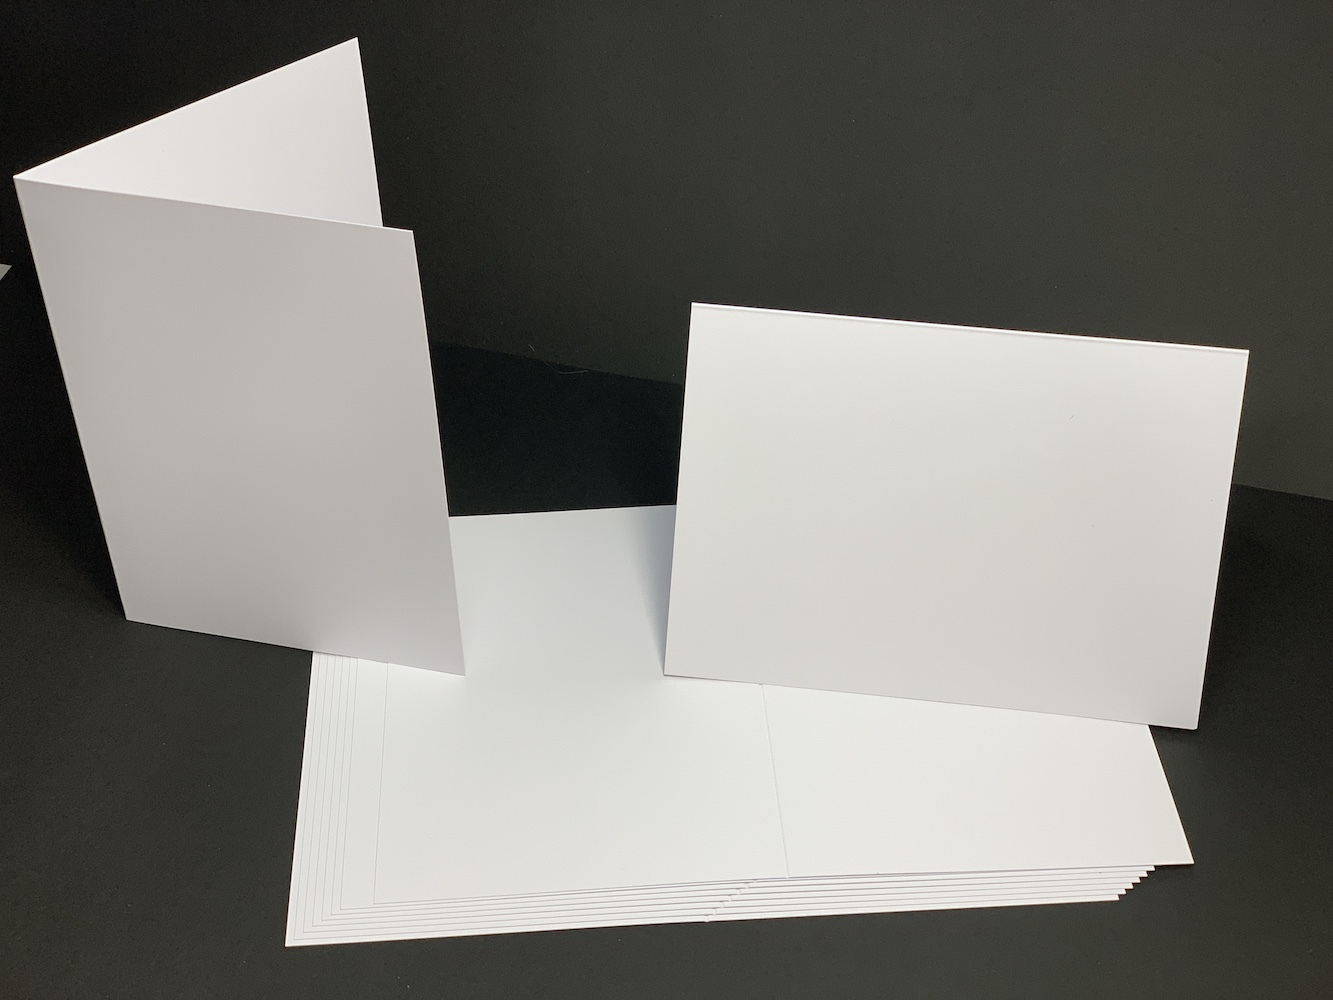 10 Pack A5 Bright White Card Blanks 250gsm with Envelopes